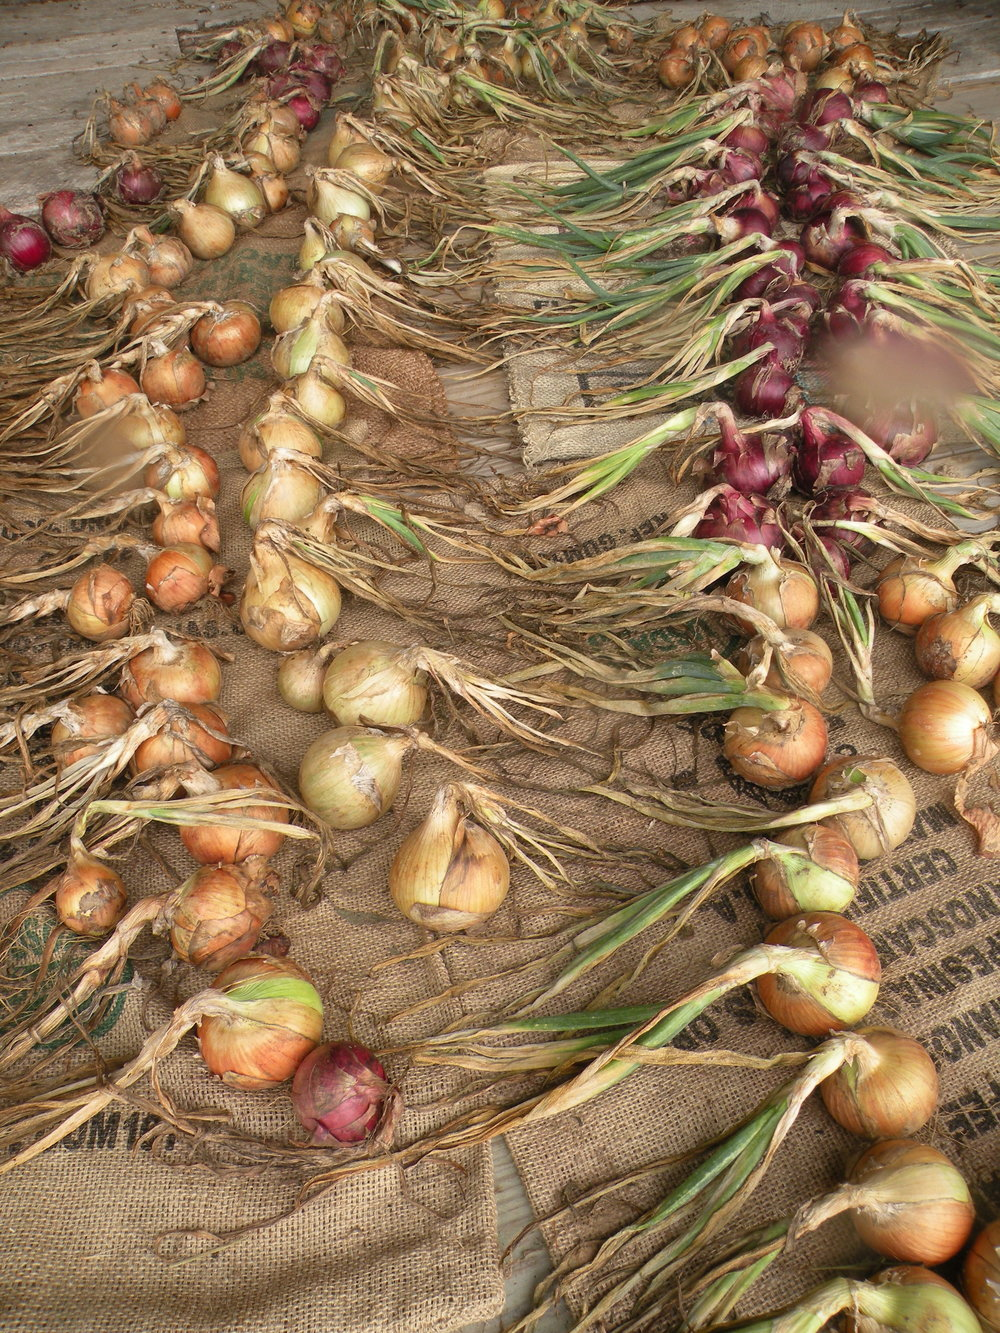 Onions drying in our barn. Photo by Erin Schneider